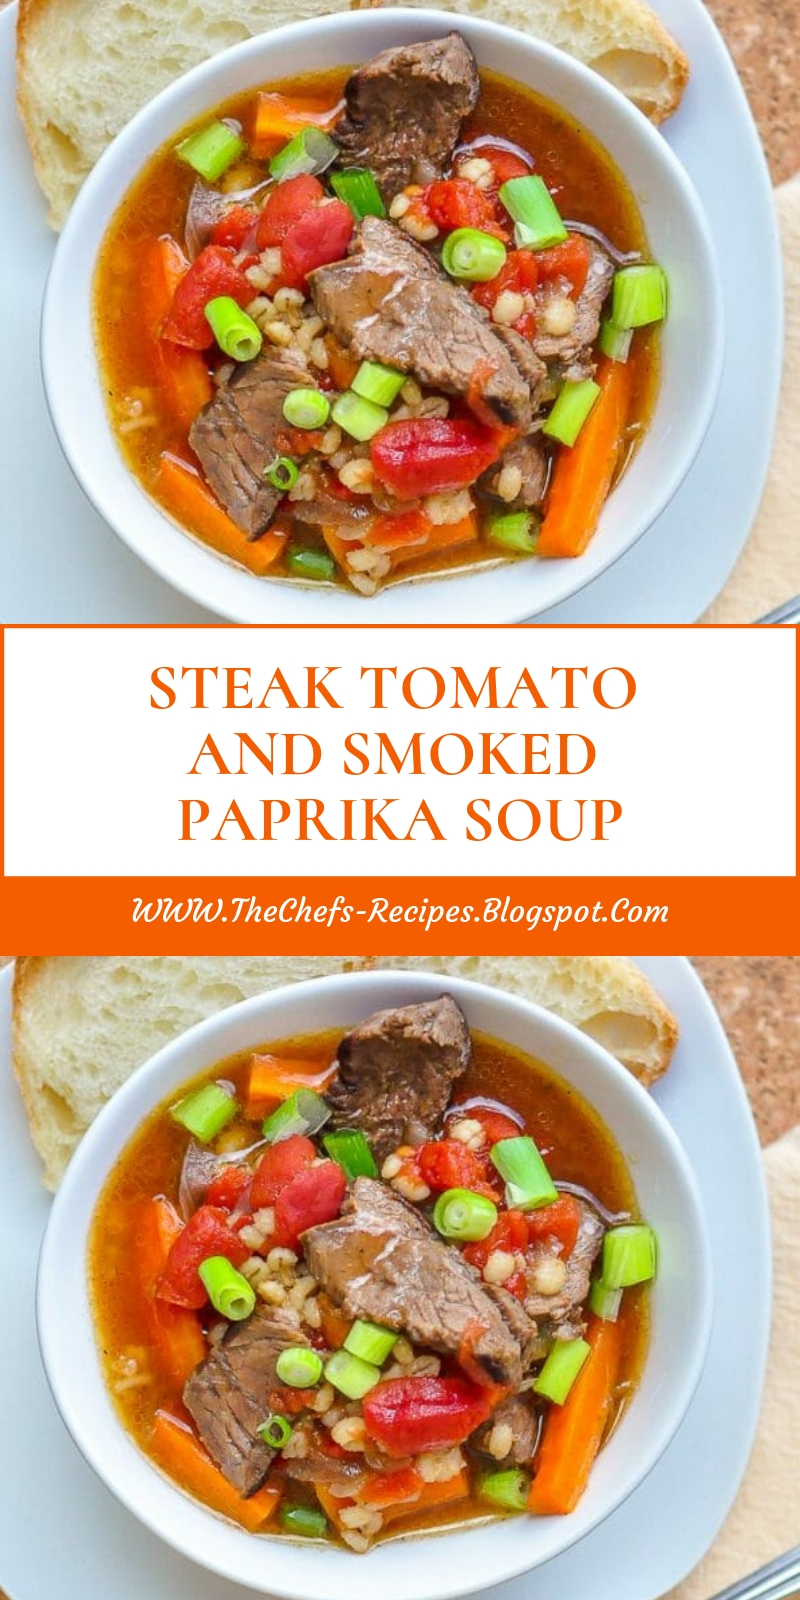 STEAK TOMATO AND SMOKED PAPRIKA SOUP